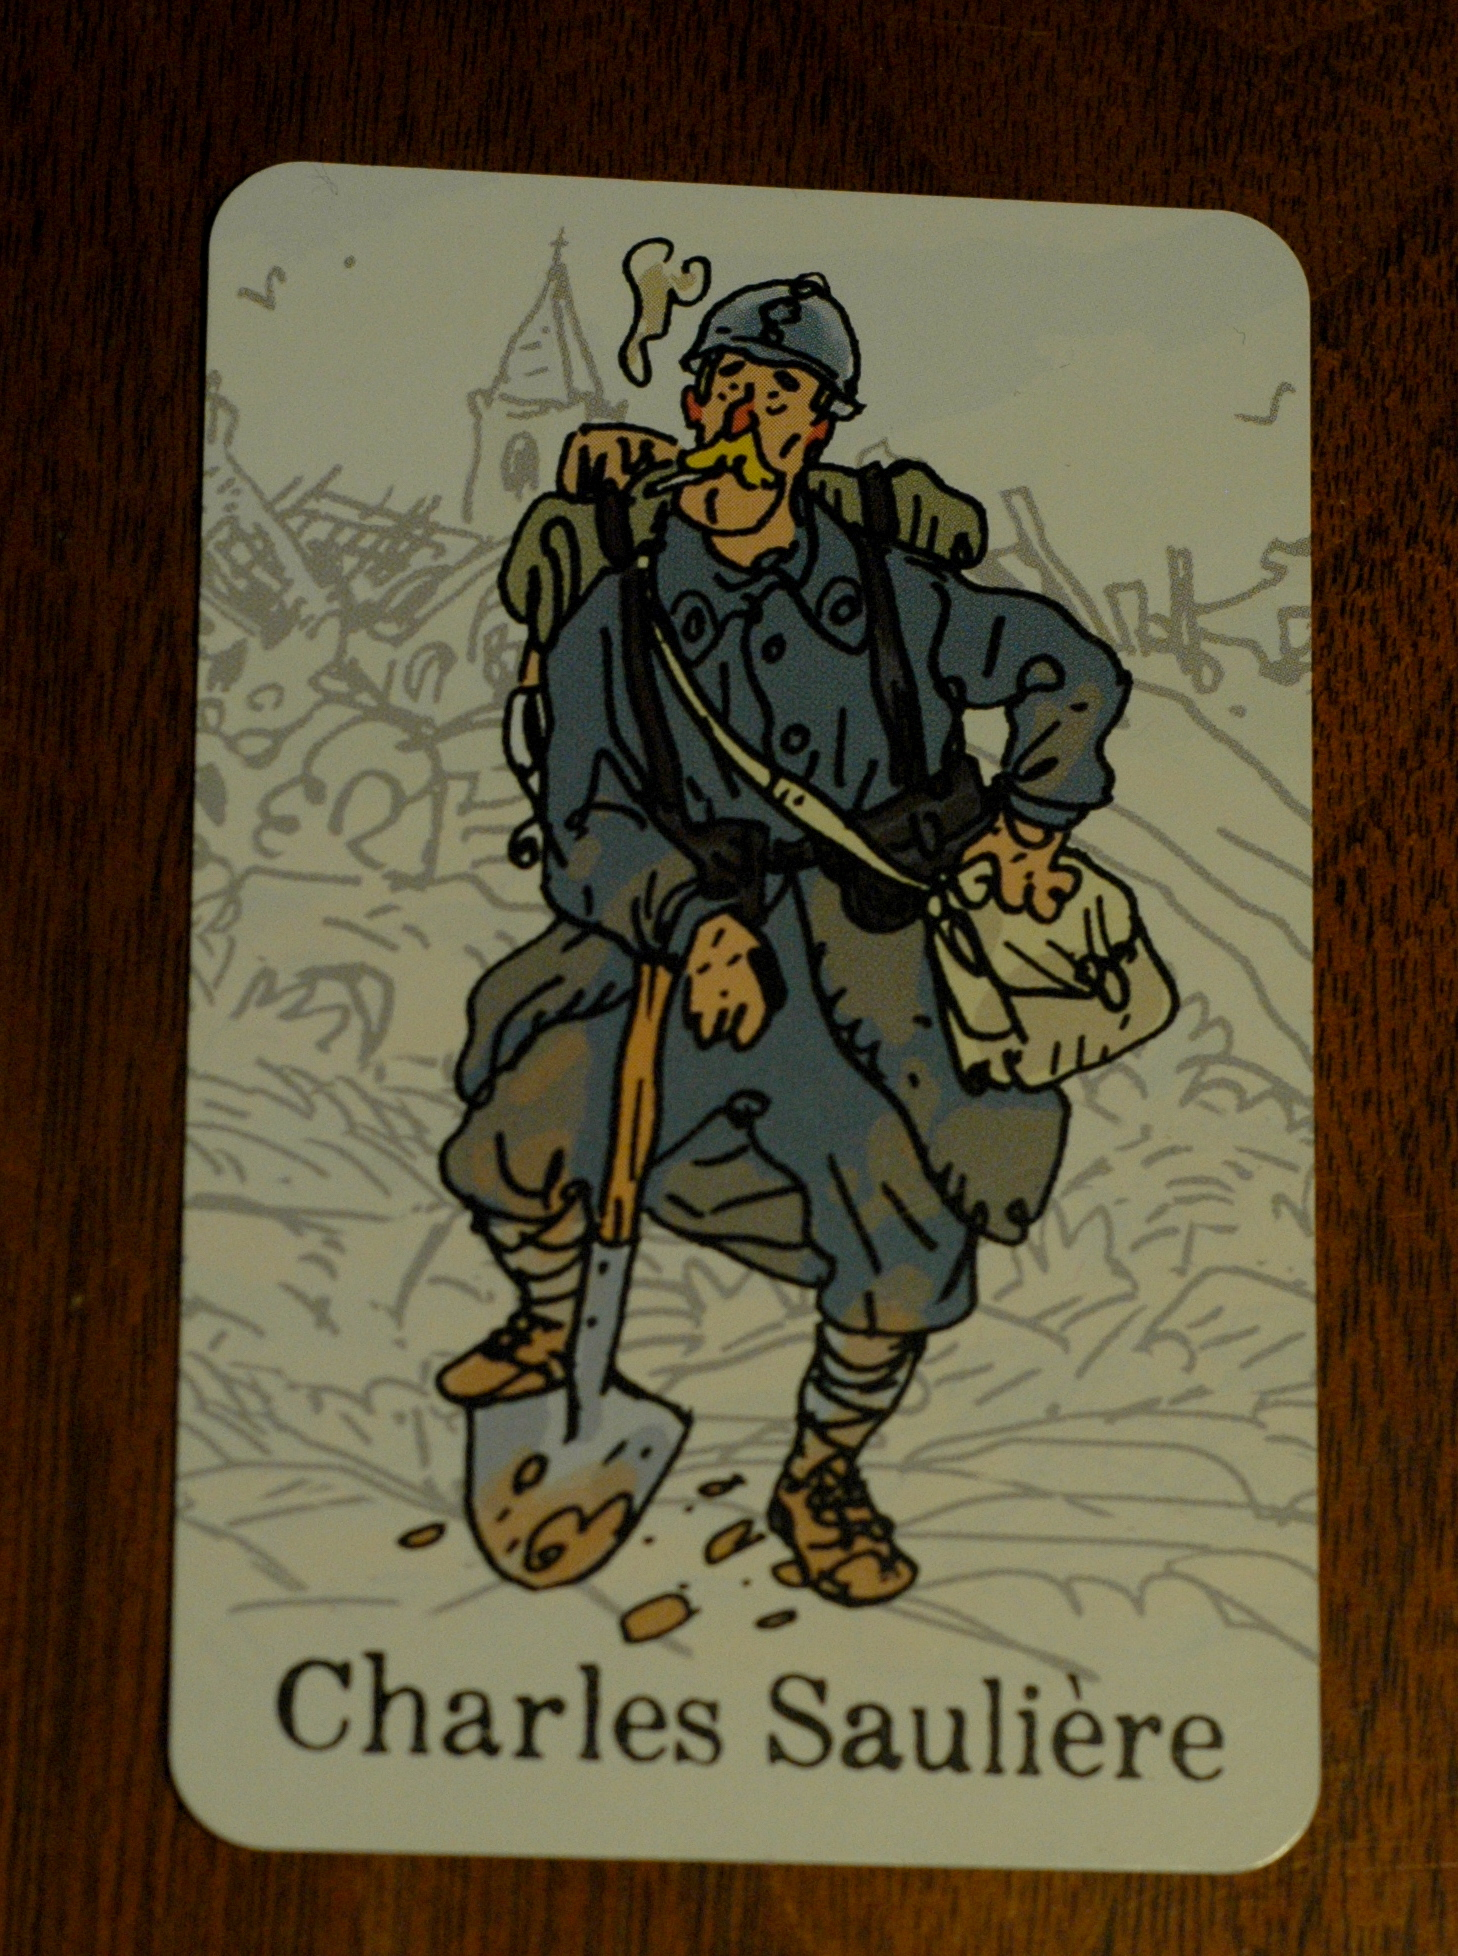 Charles Saulière's character card. Photo used with permission of the author and used for purposes of critique.